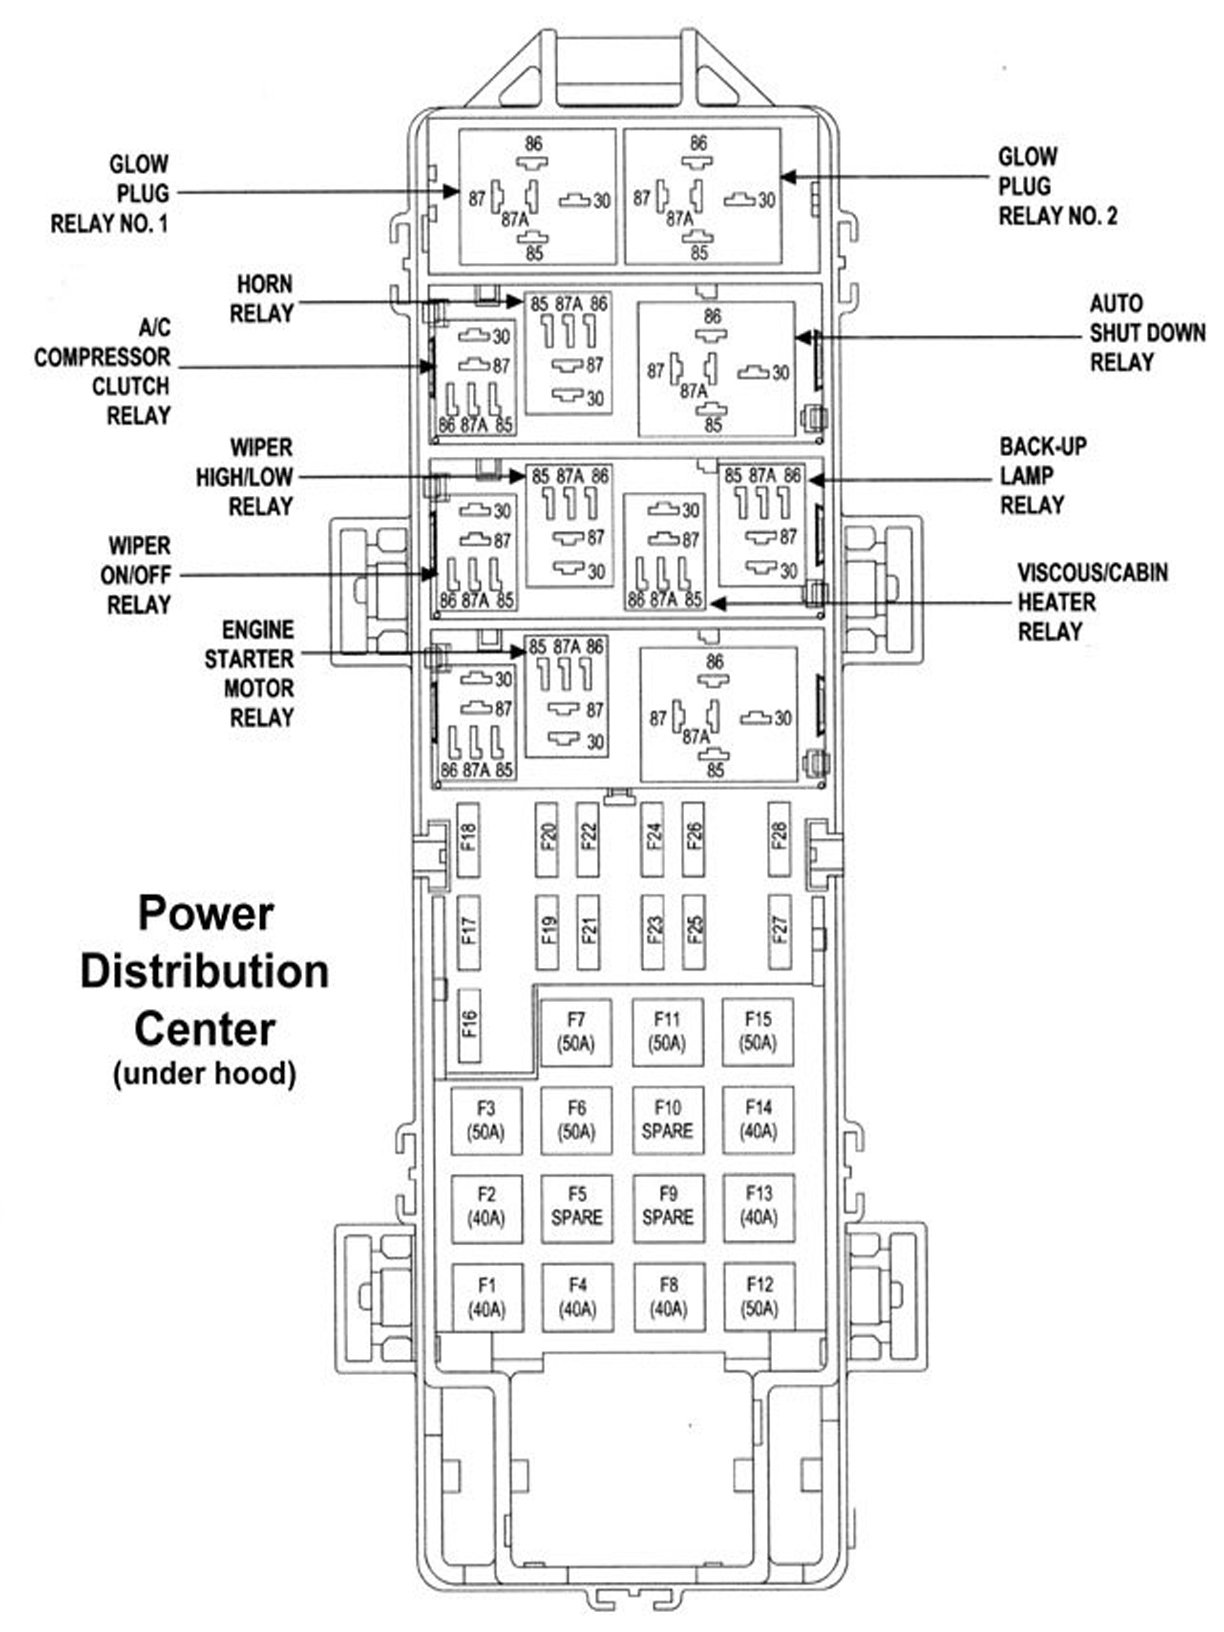 AAAAAAAAug 28 Fuse Box 04 91415 jeep grand cherokee wj 1999 to 2004 fuse box diagram cherokeeforum jeep grand cherokee fuse box diagram at fashall.co